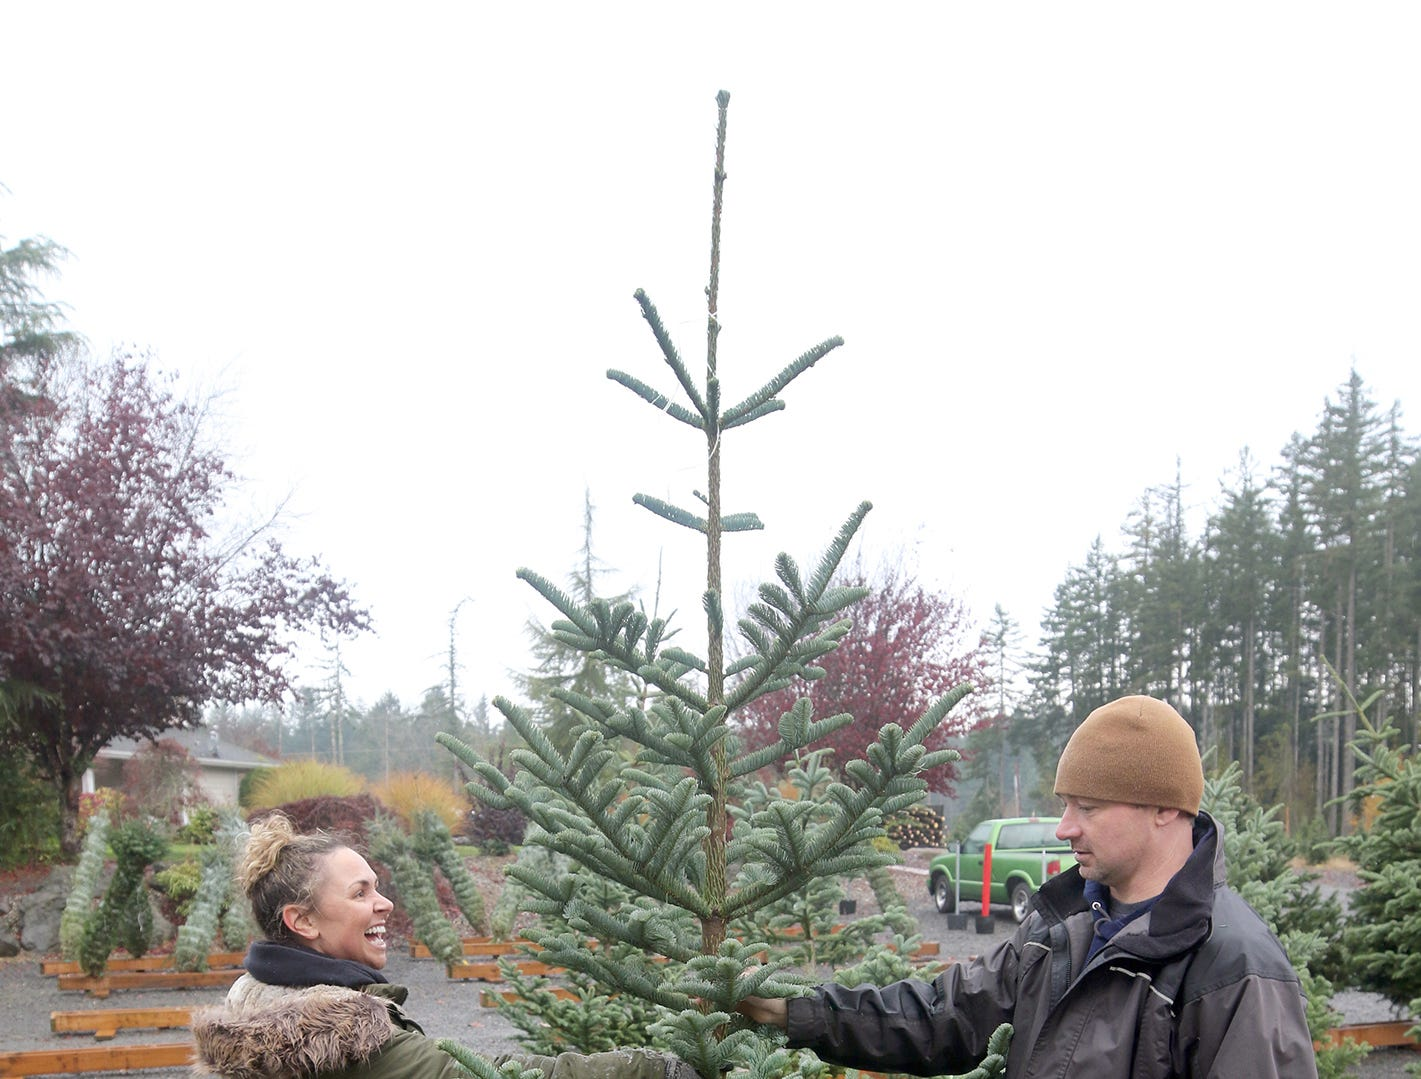 Josh Olmsted, right, helps customer Julia Lucas of Bremerton with the tree she choose on Wednesday, November, 21, 2018 at the tree farm in Poulsbo. The family has run a tree business for 50 years. Friday, November 23, is the opening day for the Poulsbo U-cut tree farm.